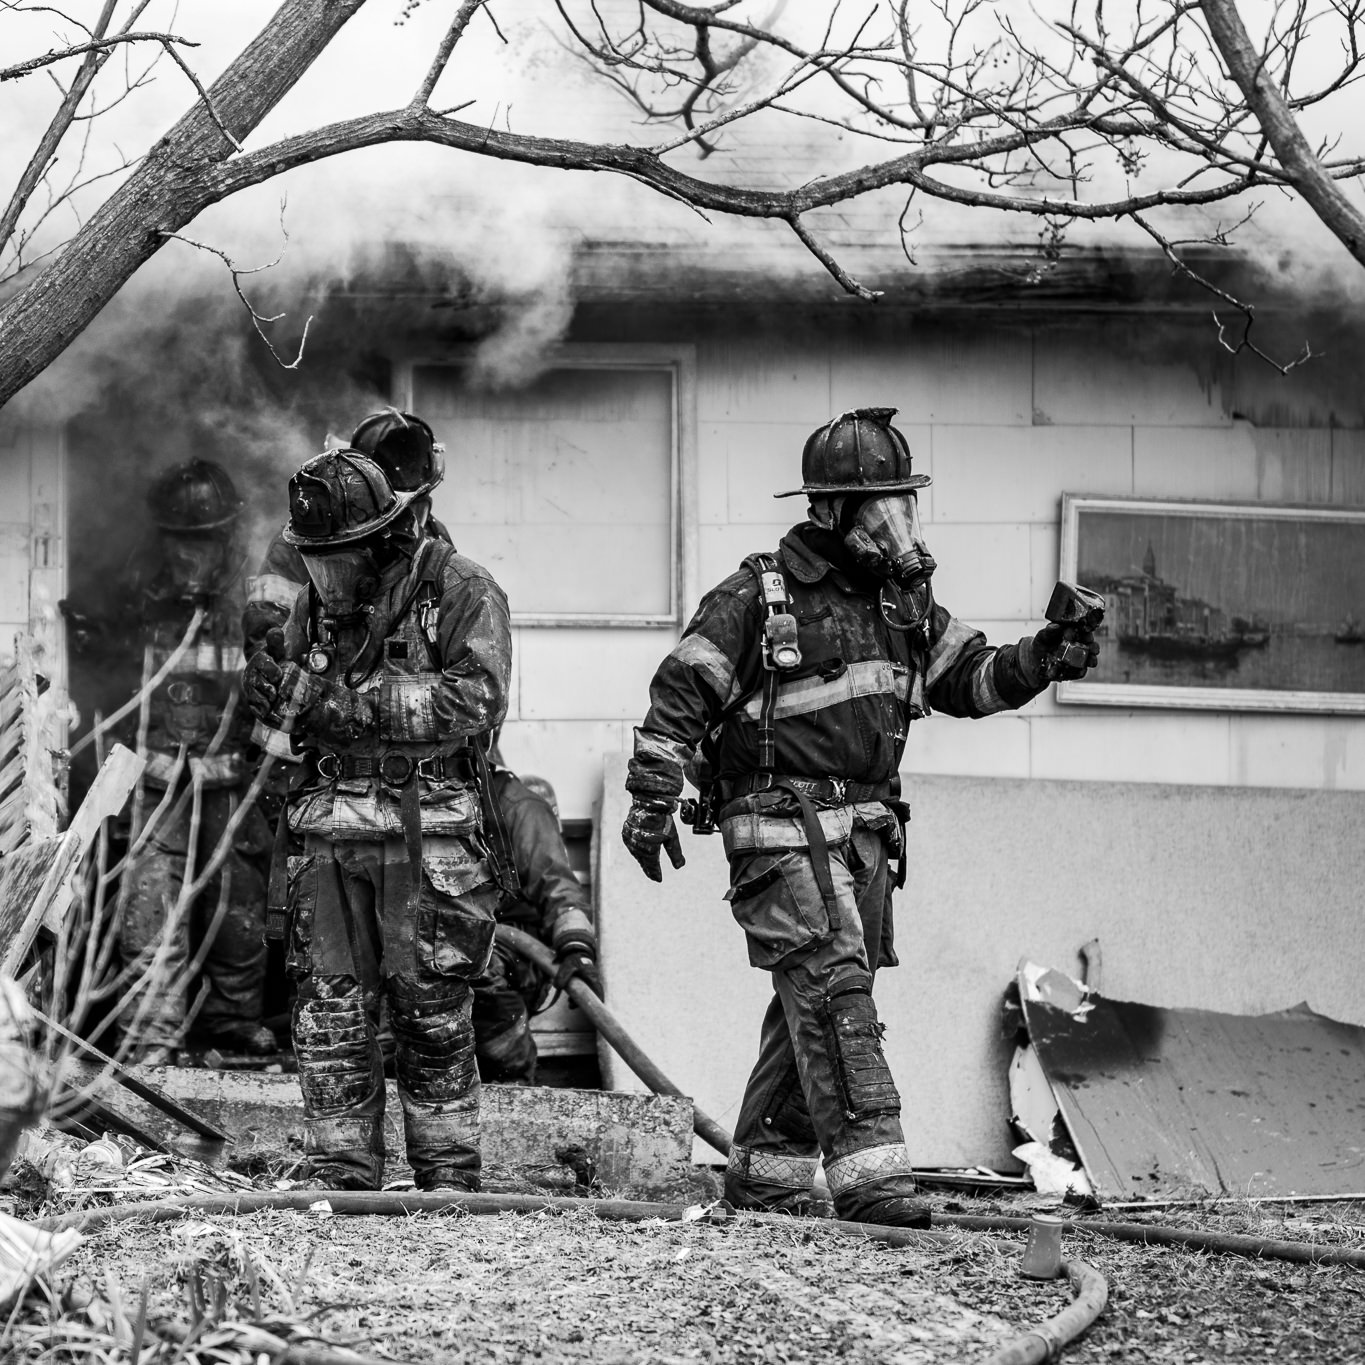 Hillsboro Fire Department | Mike Wade | Rural Life Photography